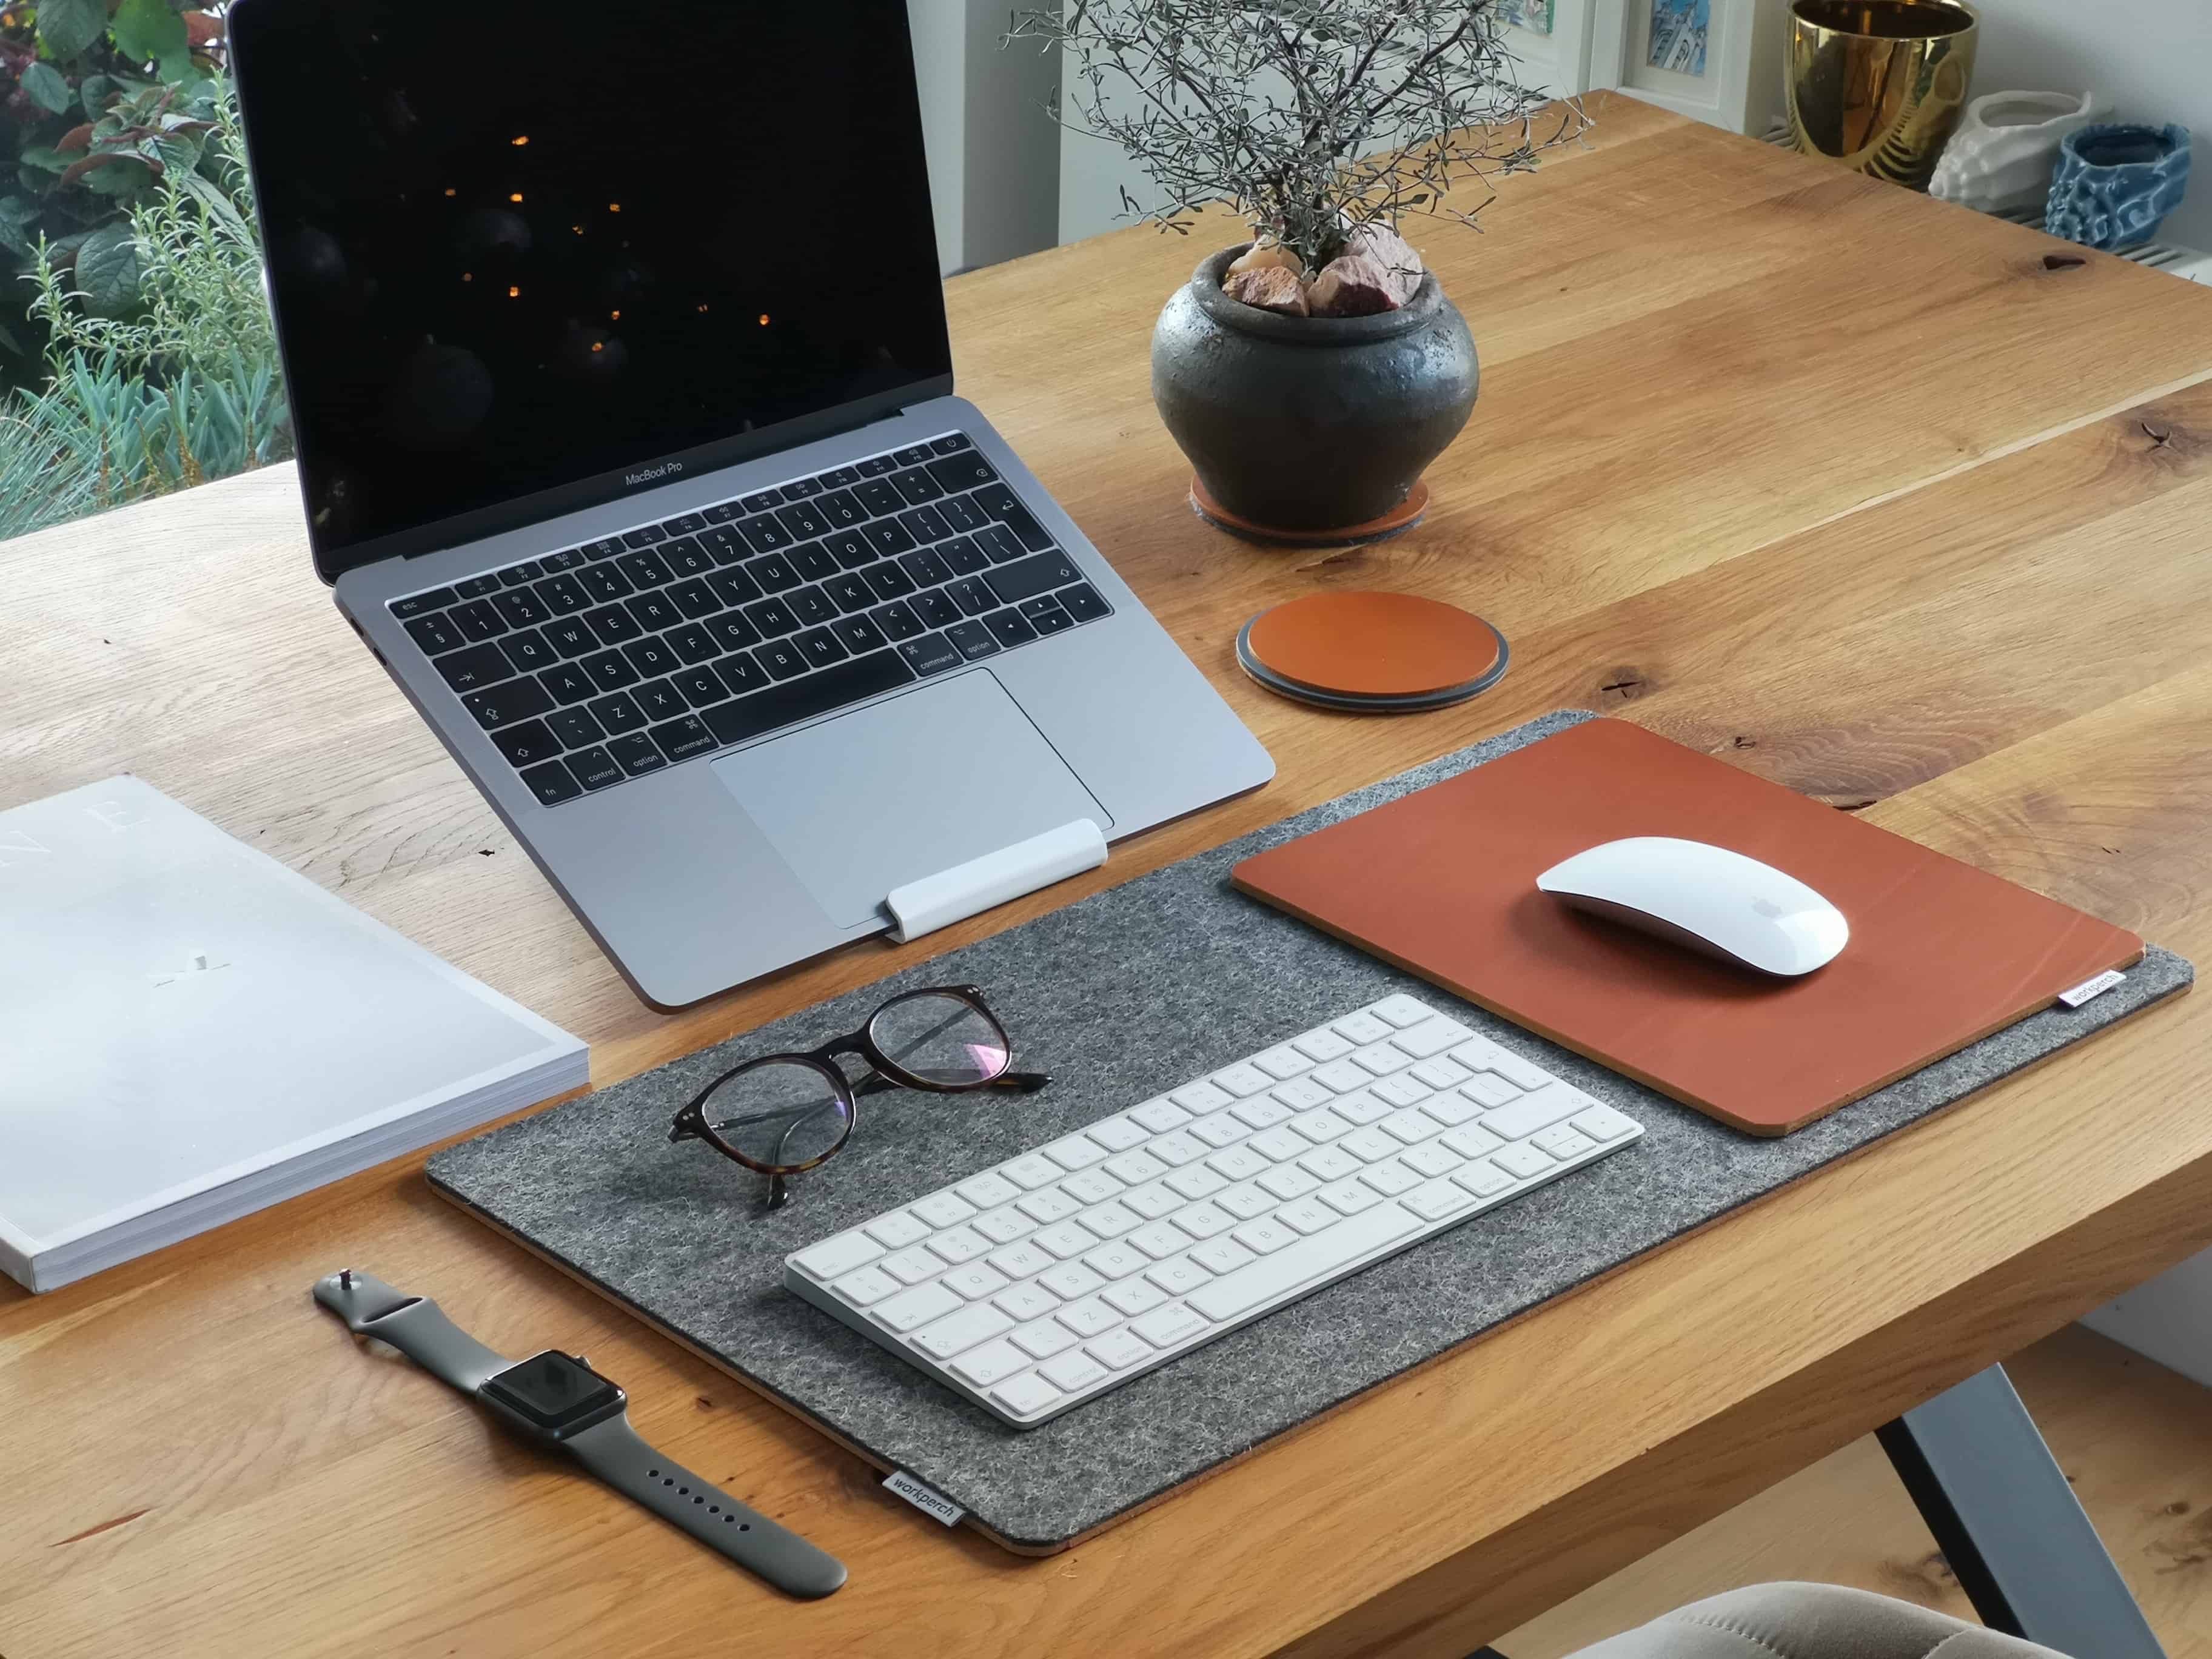 macbook on stand, mouse and keyboard on desk mat